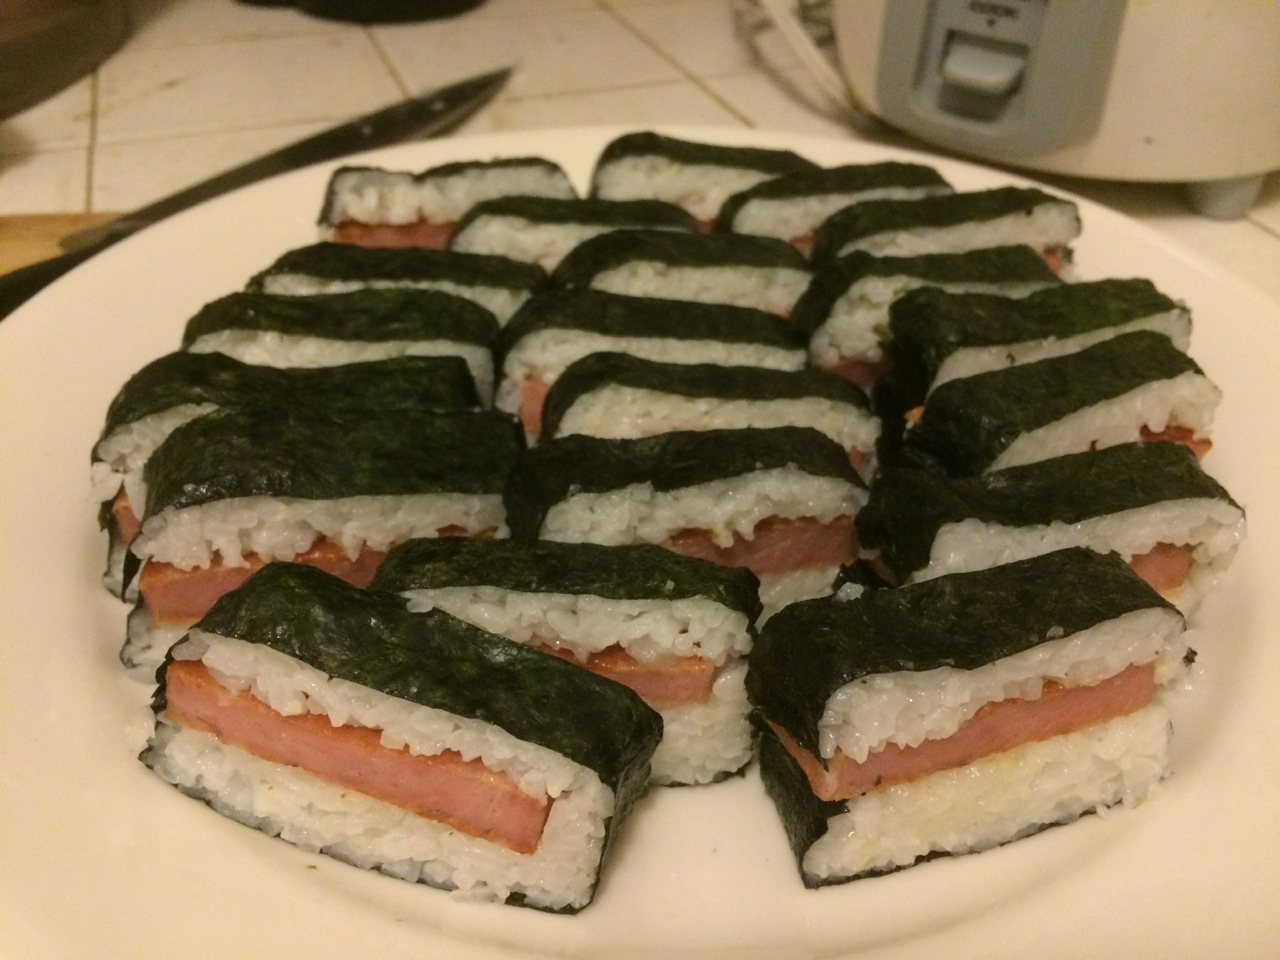 Spam musubis